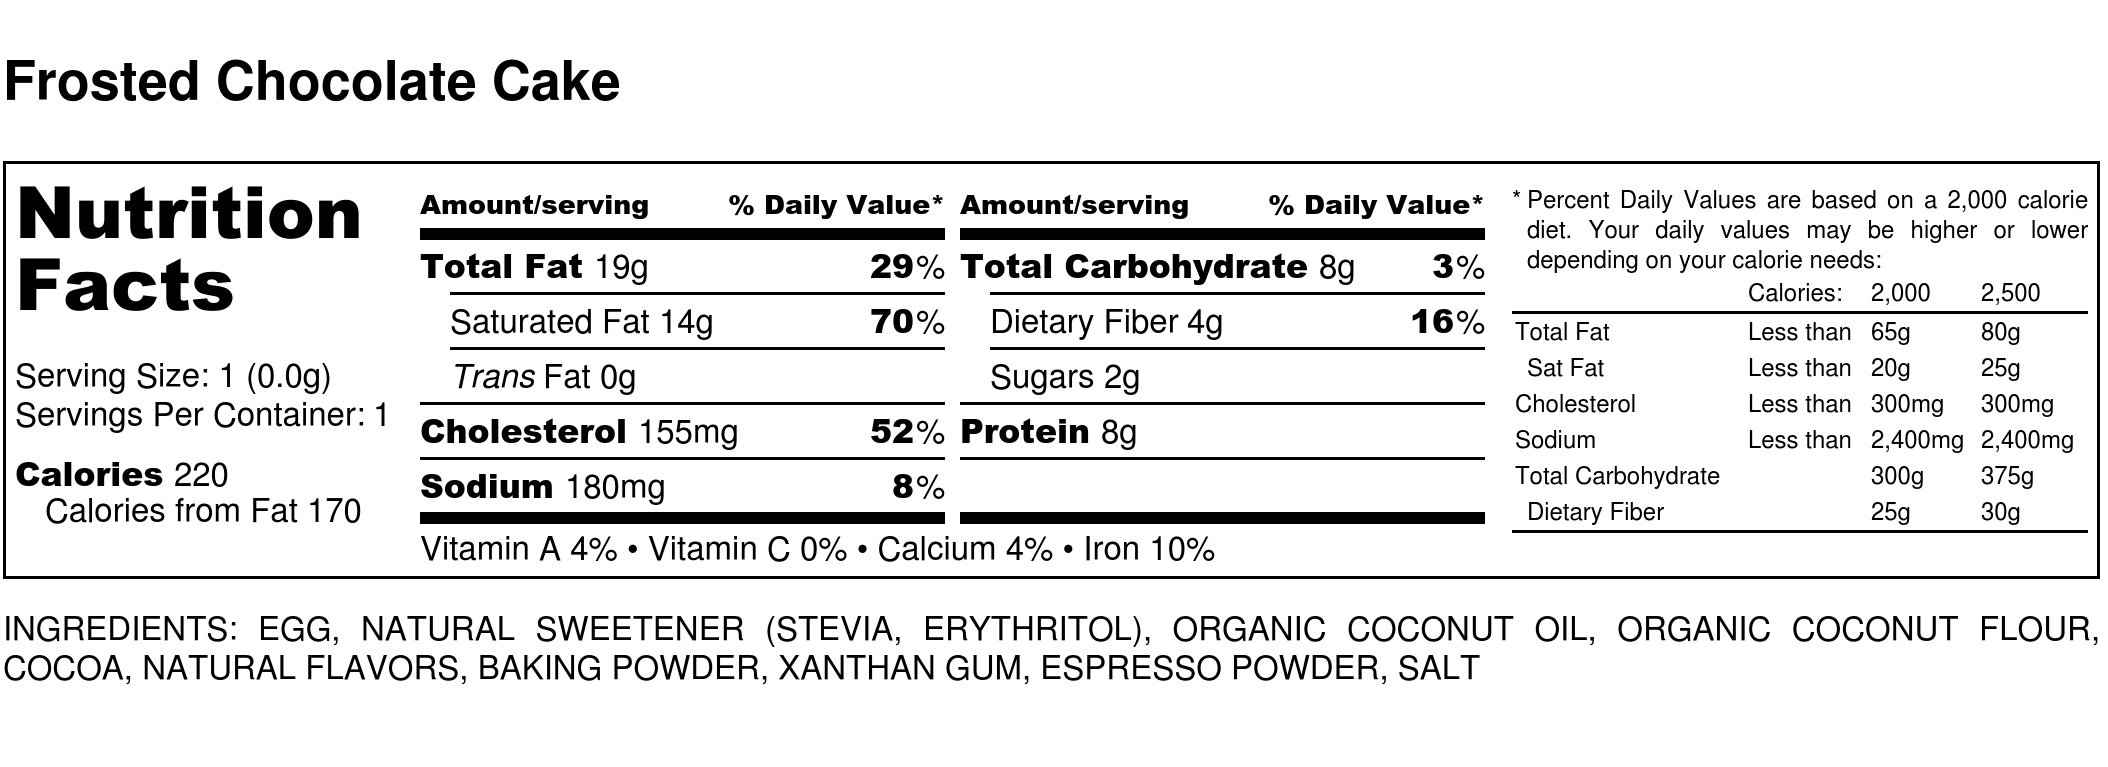 frosted-chocolate-cake-nutrition-label-new-2.jpg